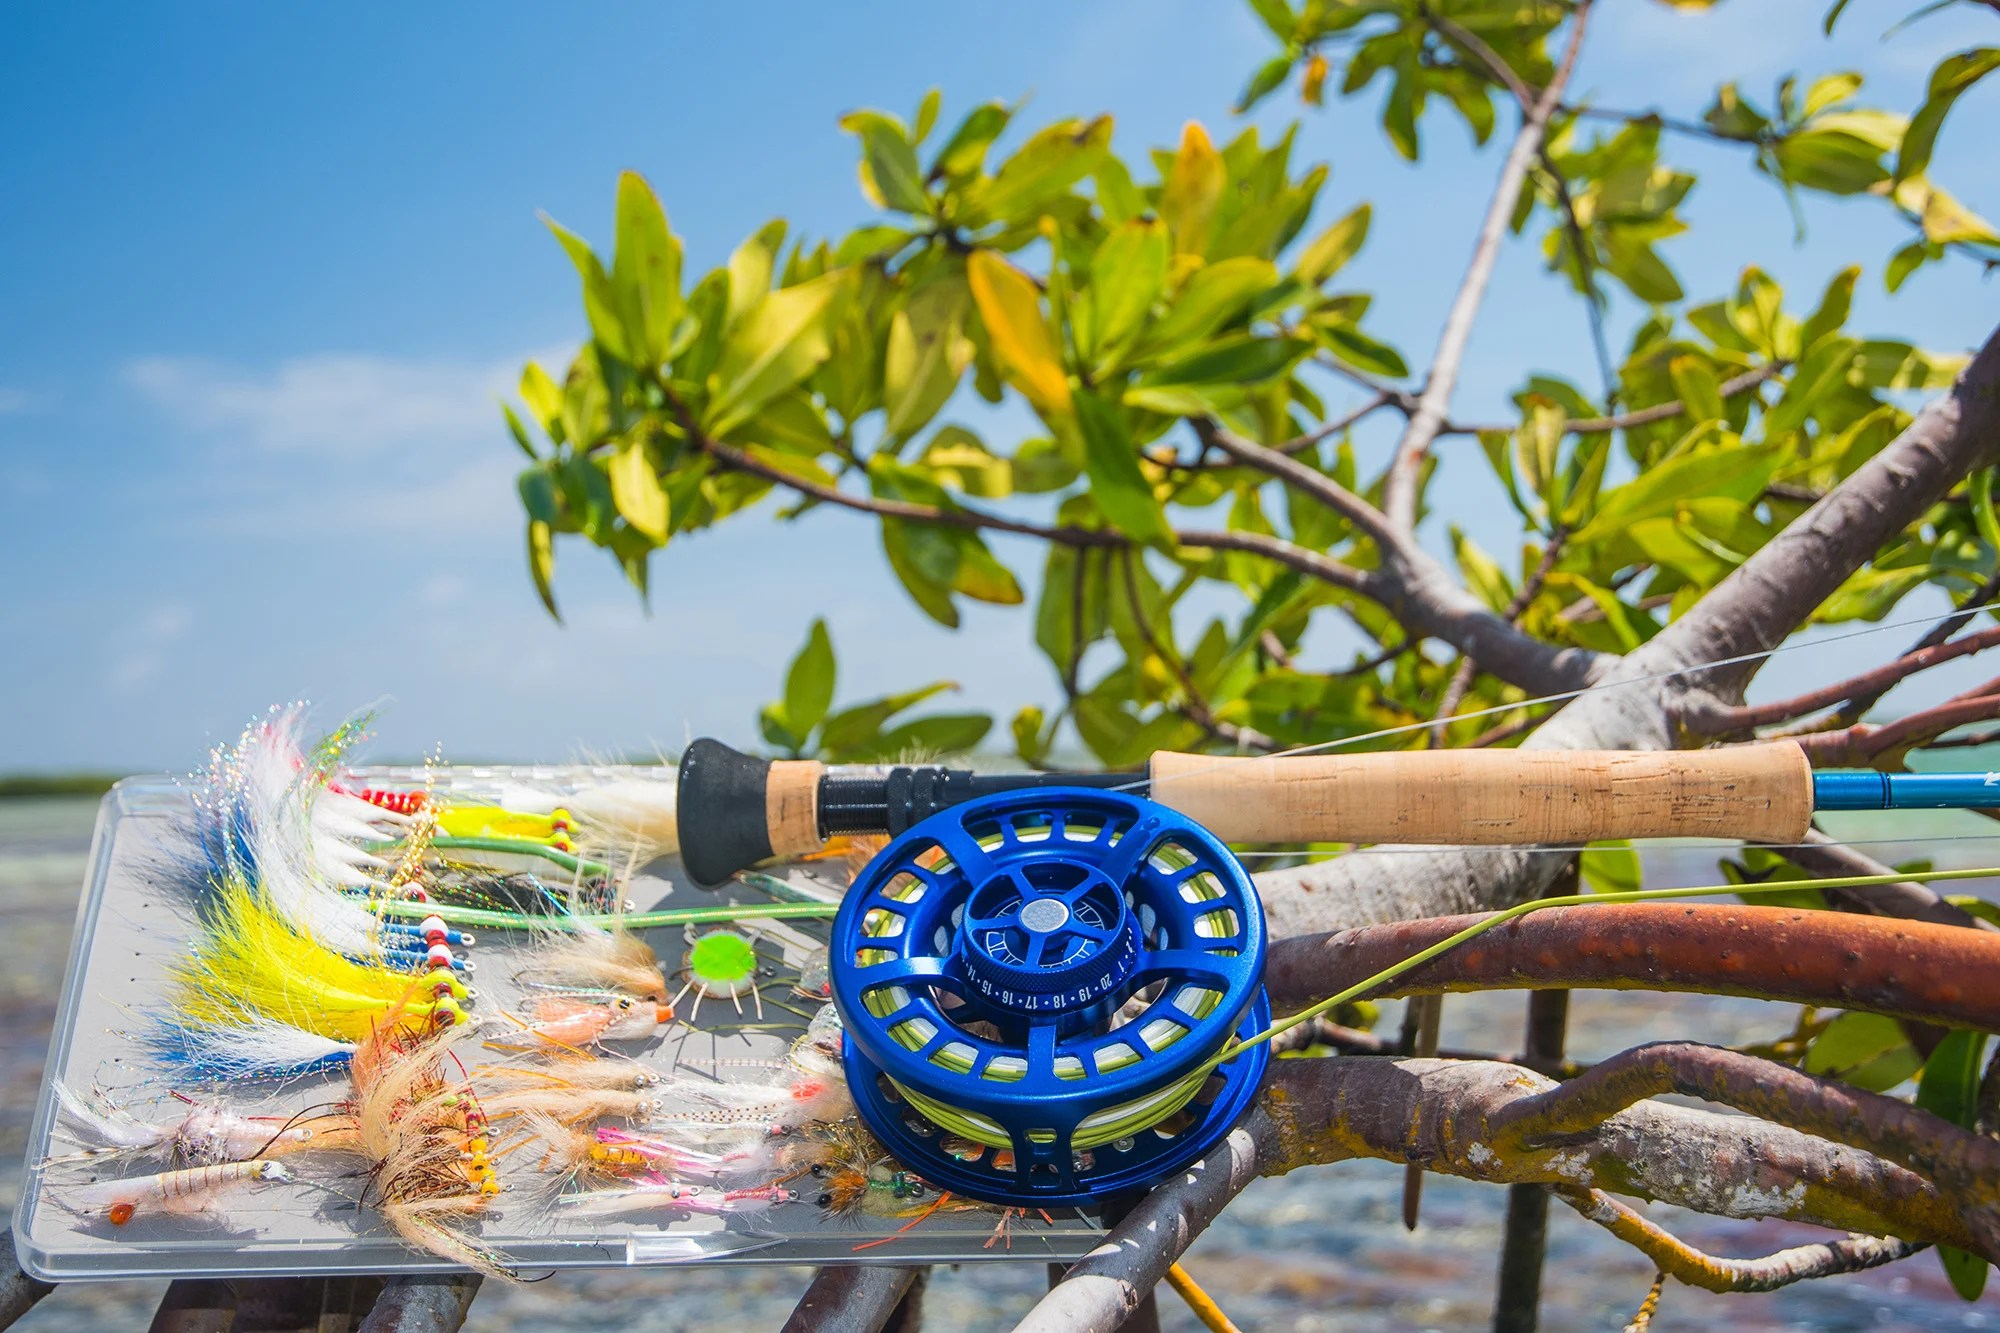 A saltwater fly fishing rod with a selection of flies resting on a mangrove